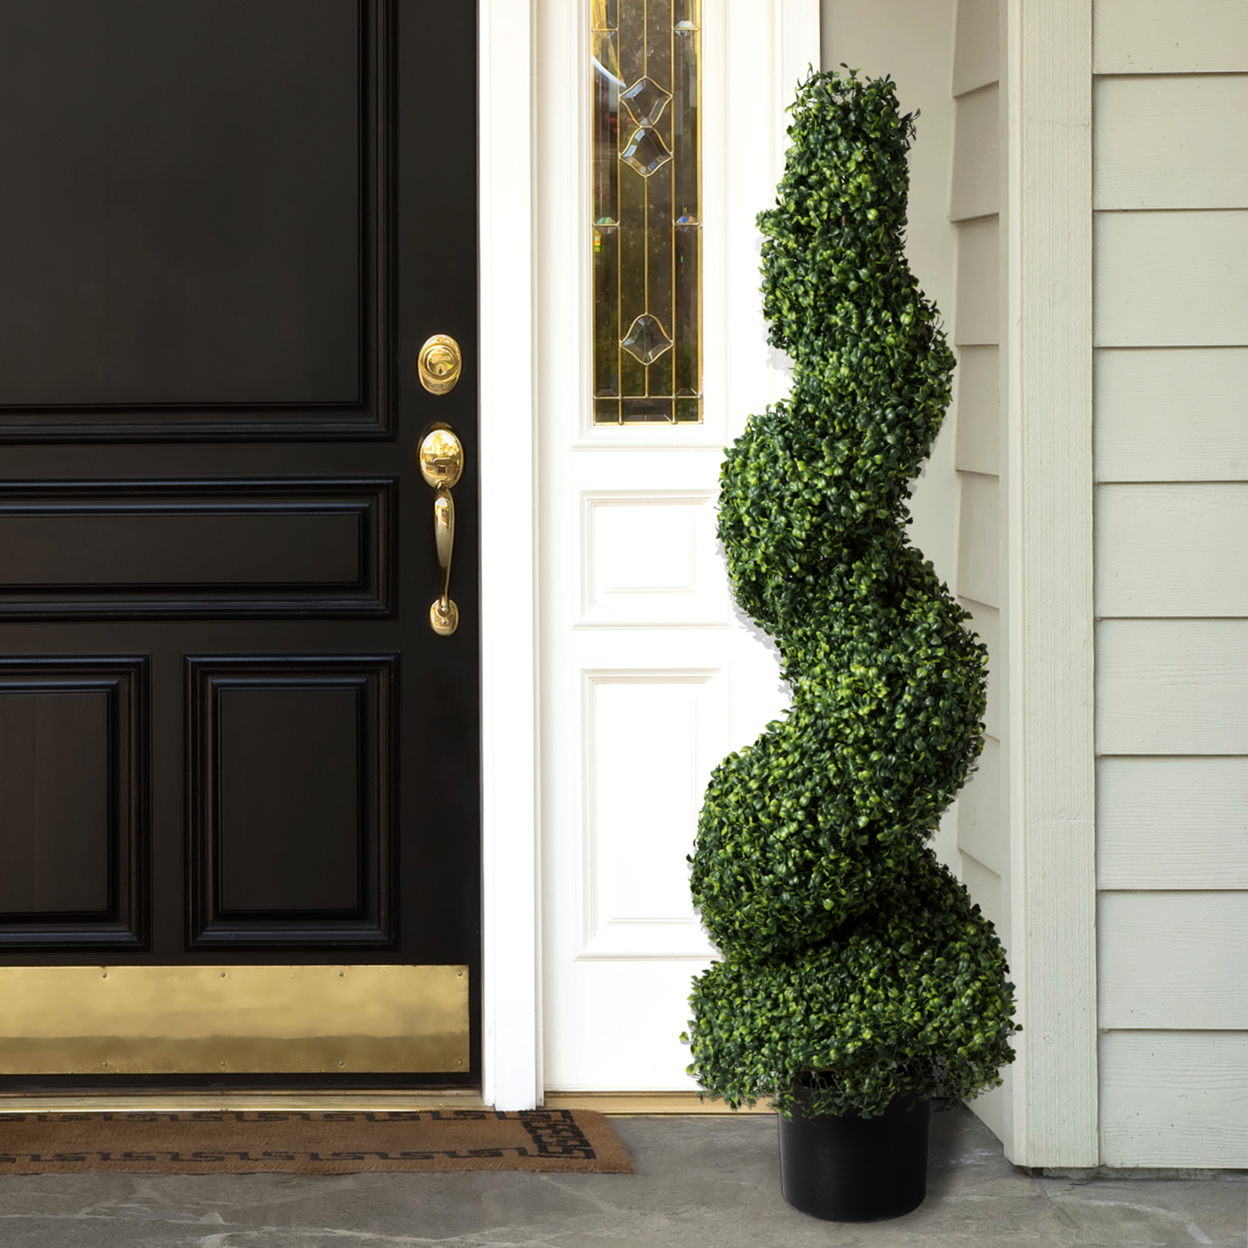 Artificial Boxwood Spiral Tree Over 4 Ft Tall Faux Plant Topiary Indoor Outdoor (1)